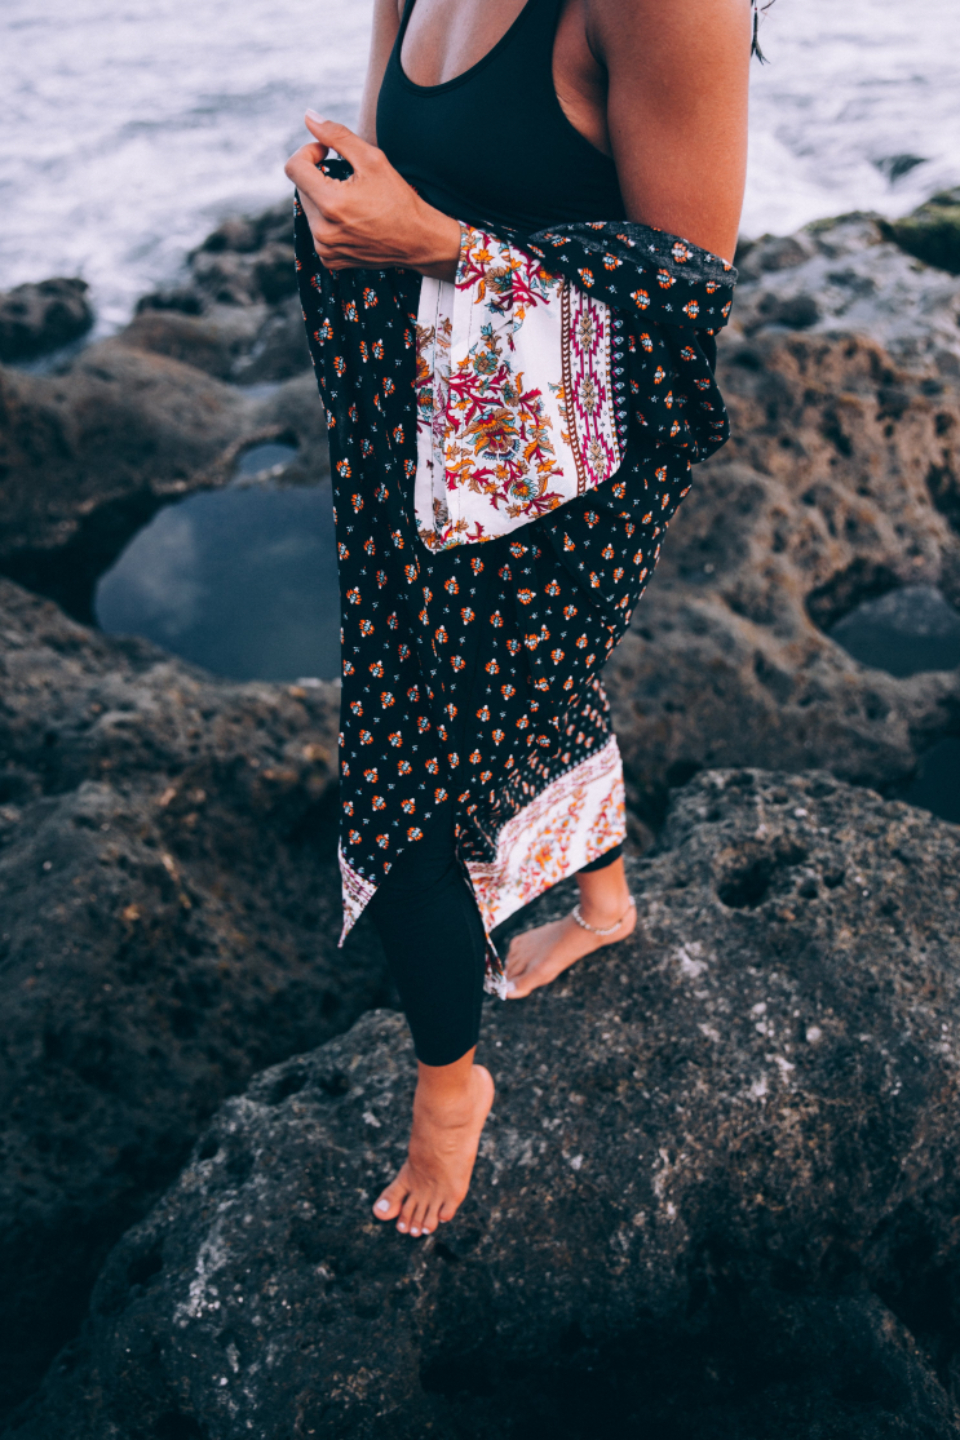 ocean sea person coast shore vacation travel tan robe female woman necklace rocks nature outdoors feet